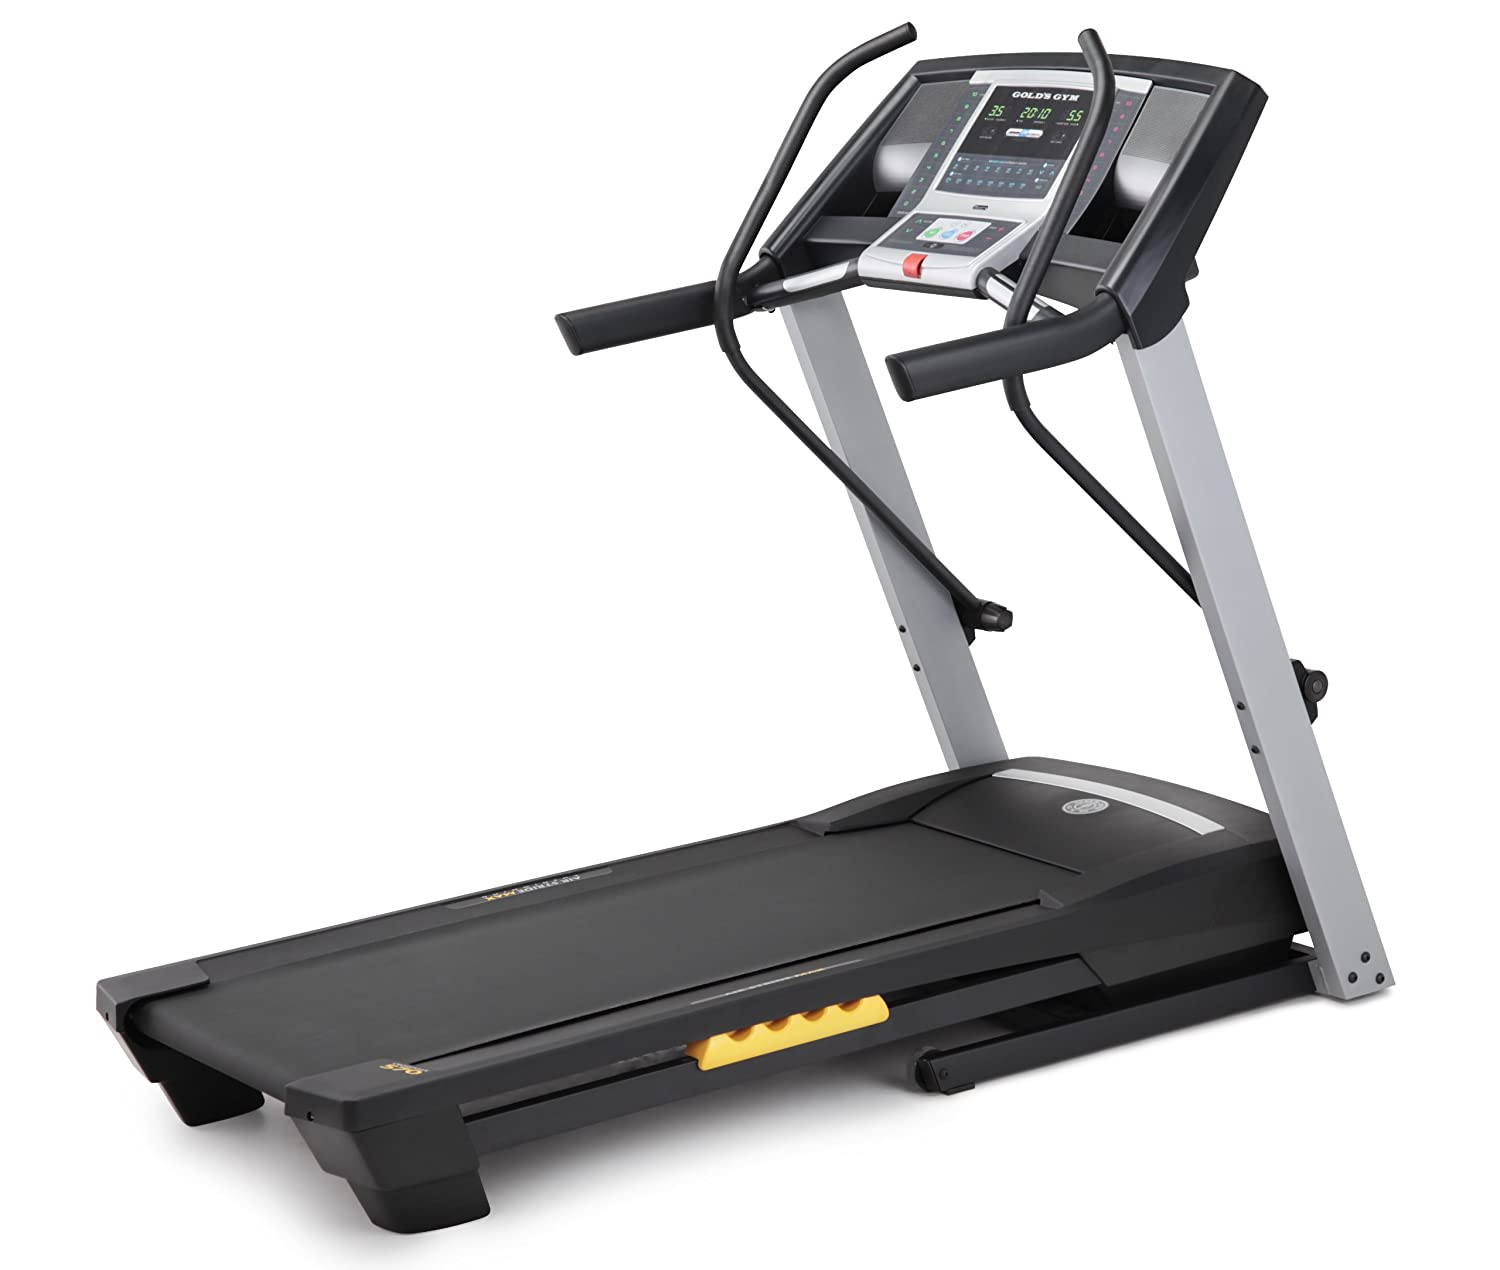 Amazon.com : Gold's Gym Crosswalk 570 : Exercise Treadmills : Sports &  Outdoors